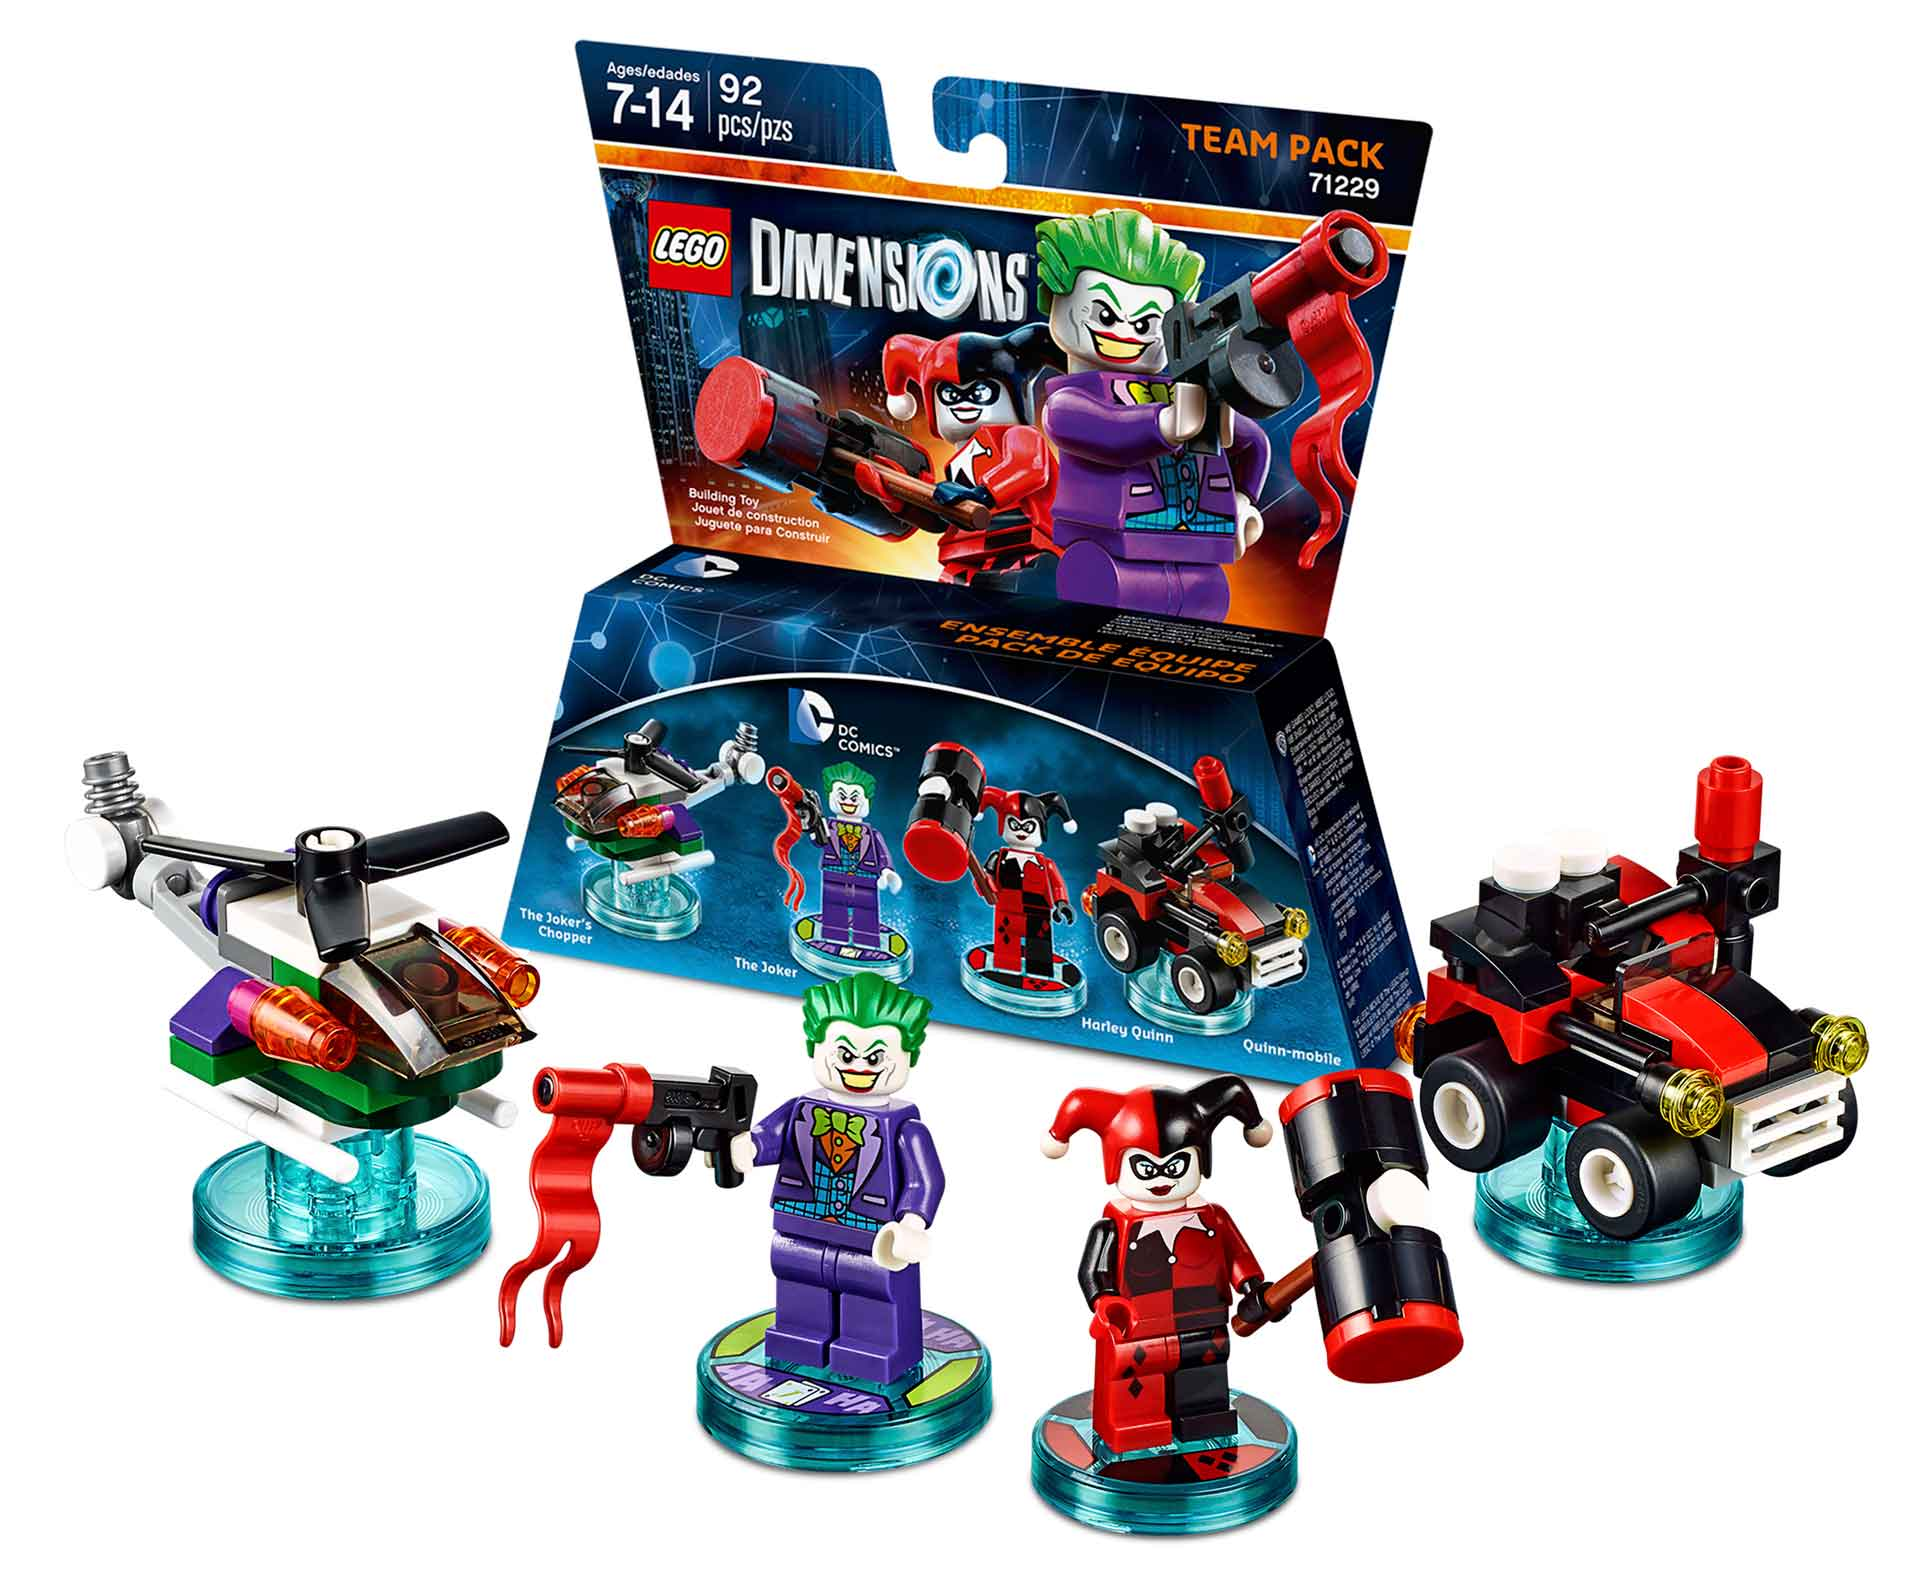 Toy Story Toys Argos Doc Brown Announces New Lego Dimensions Figures Including